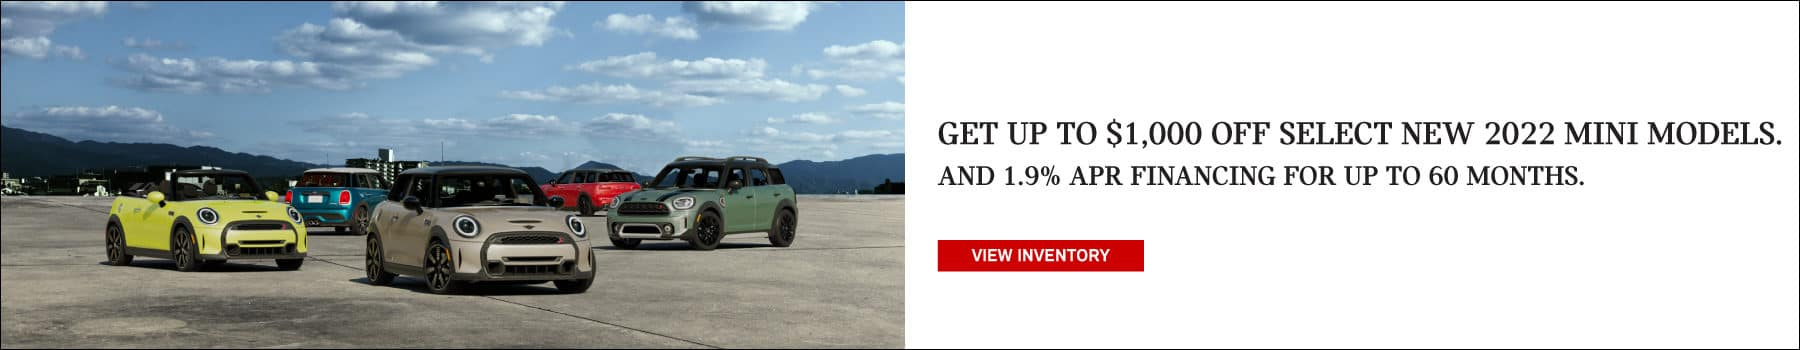 GET UP TO $1,000 OFF SELECT NEW 2022 MINI MODELS, AND 1.9% APR FINANCING FOR UP TO 60 MONTHS.